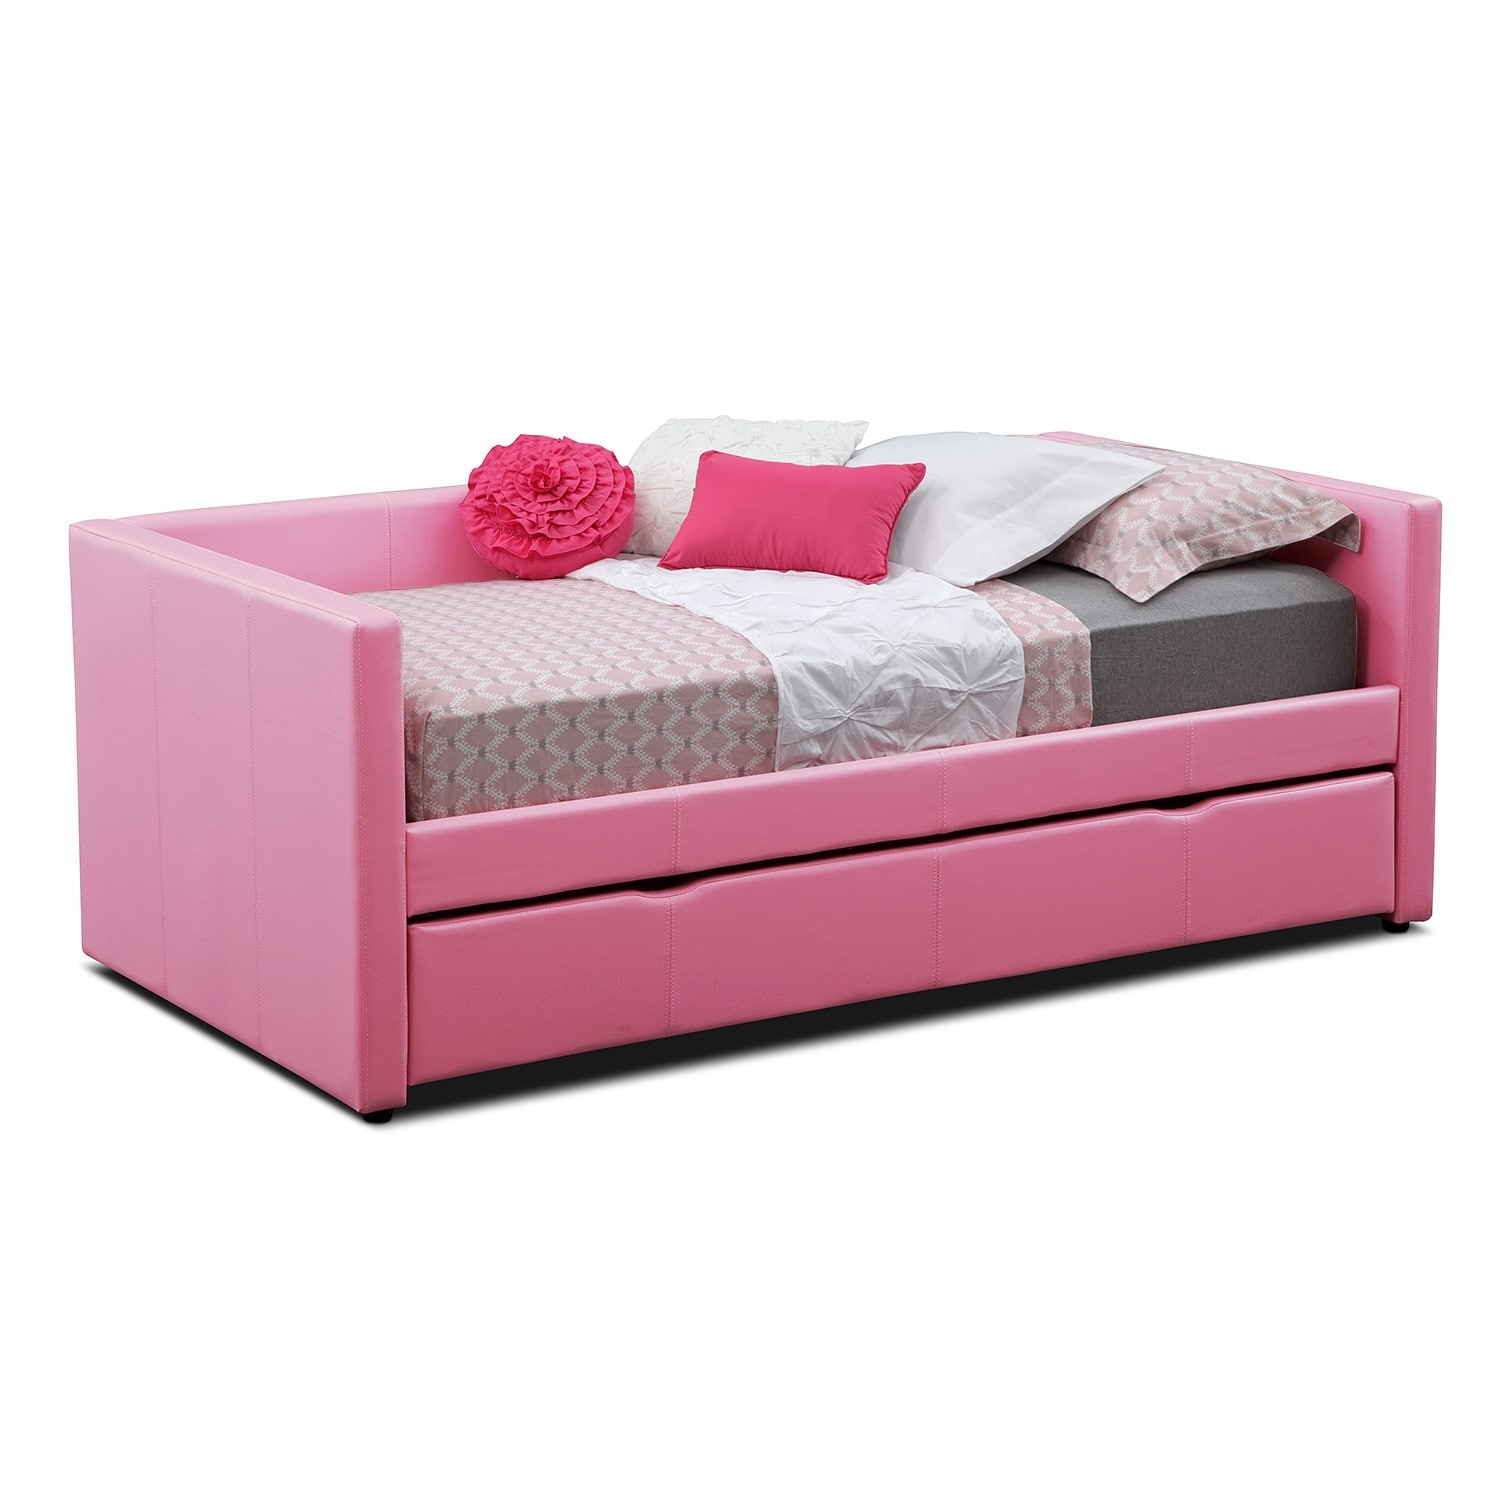 carey full daybed with trundle pink